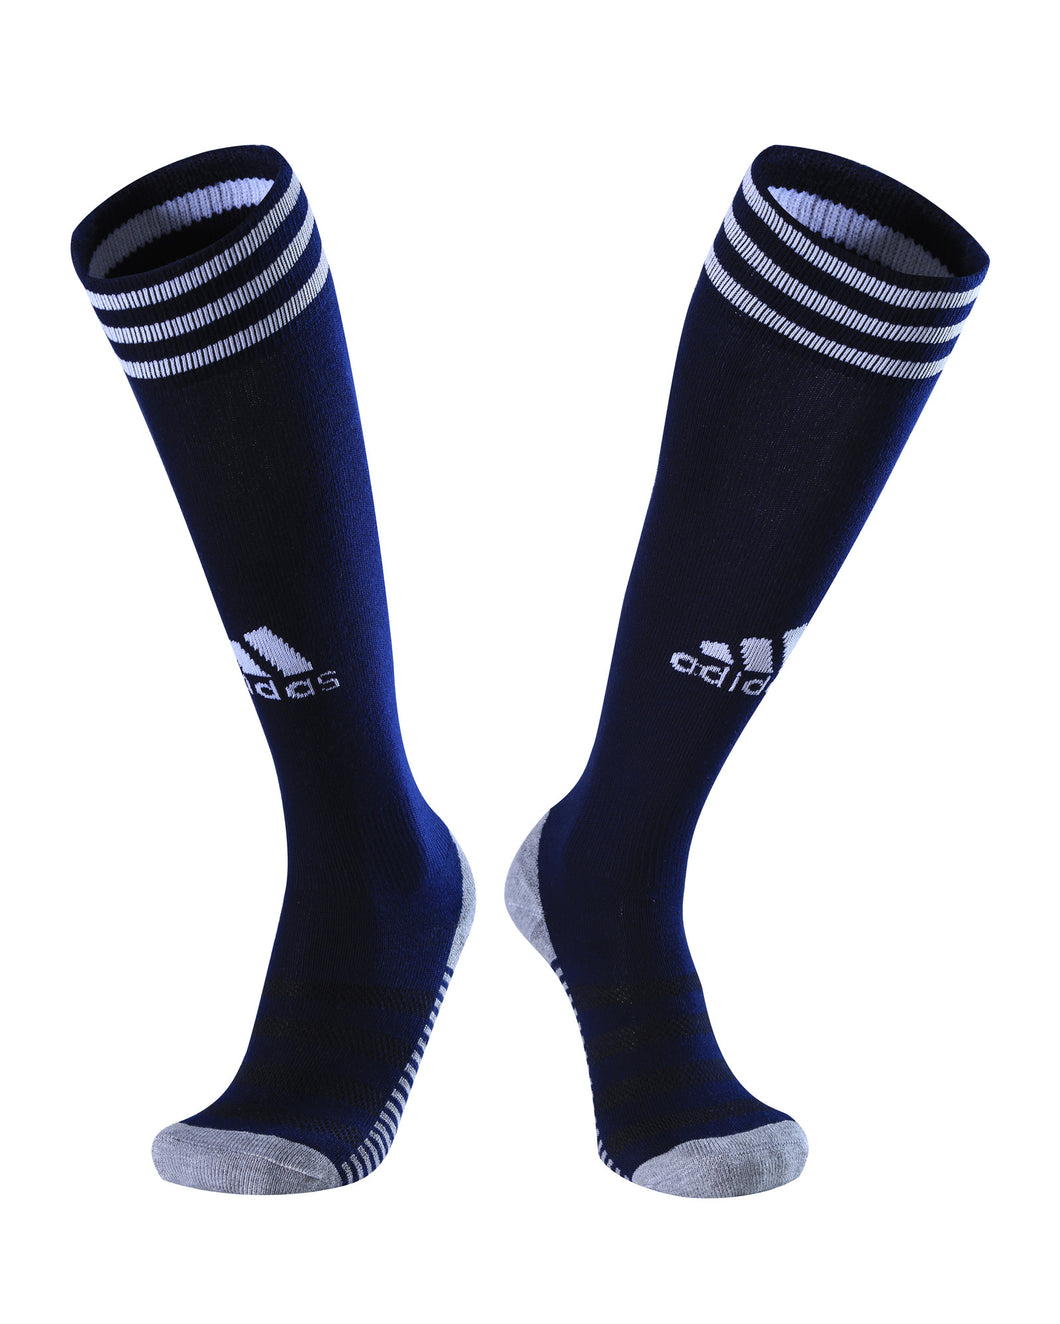 Socks Junior and Adult - Adidas Dark Blue with white trim